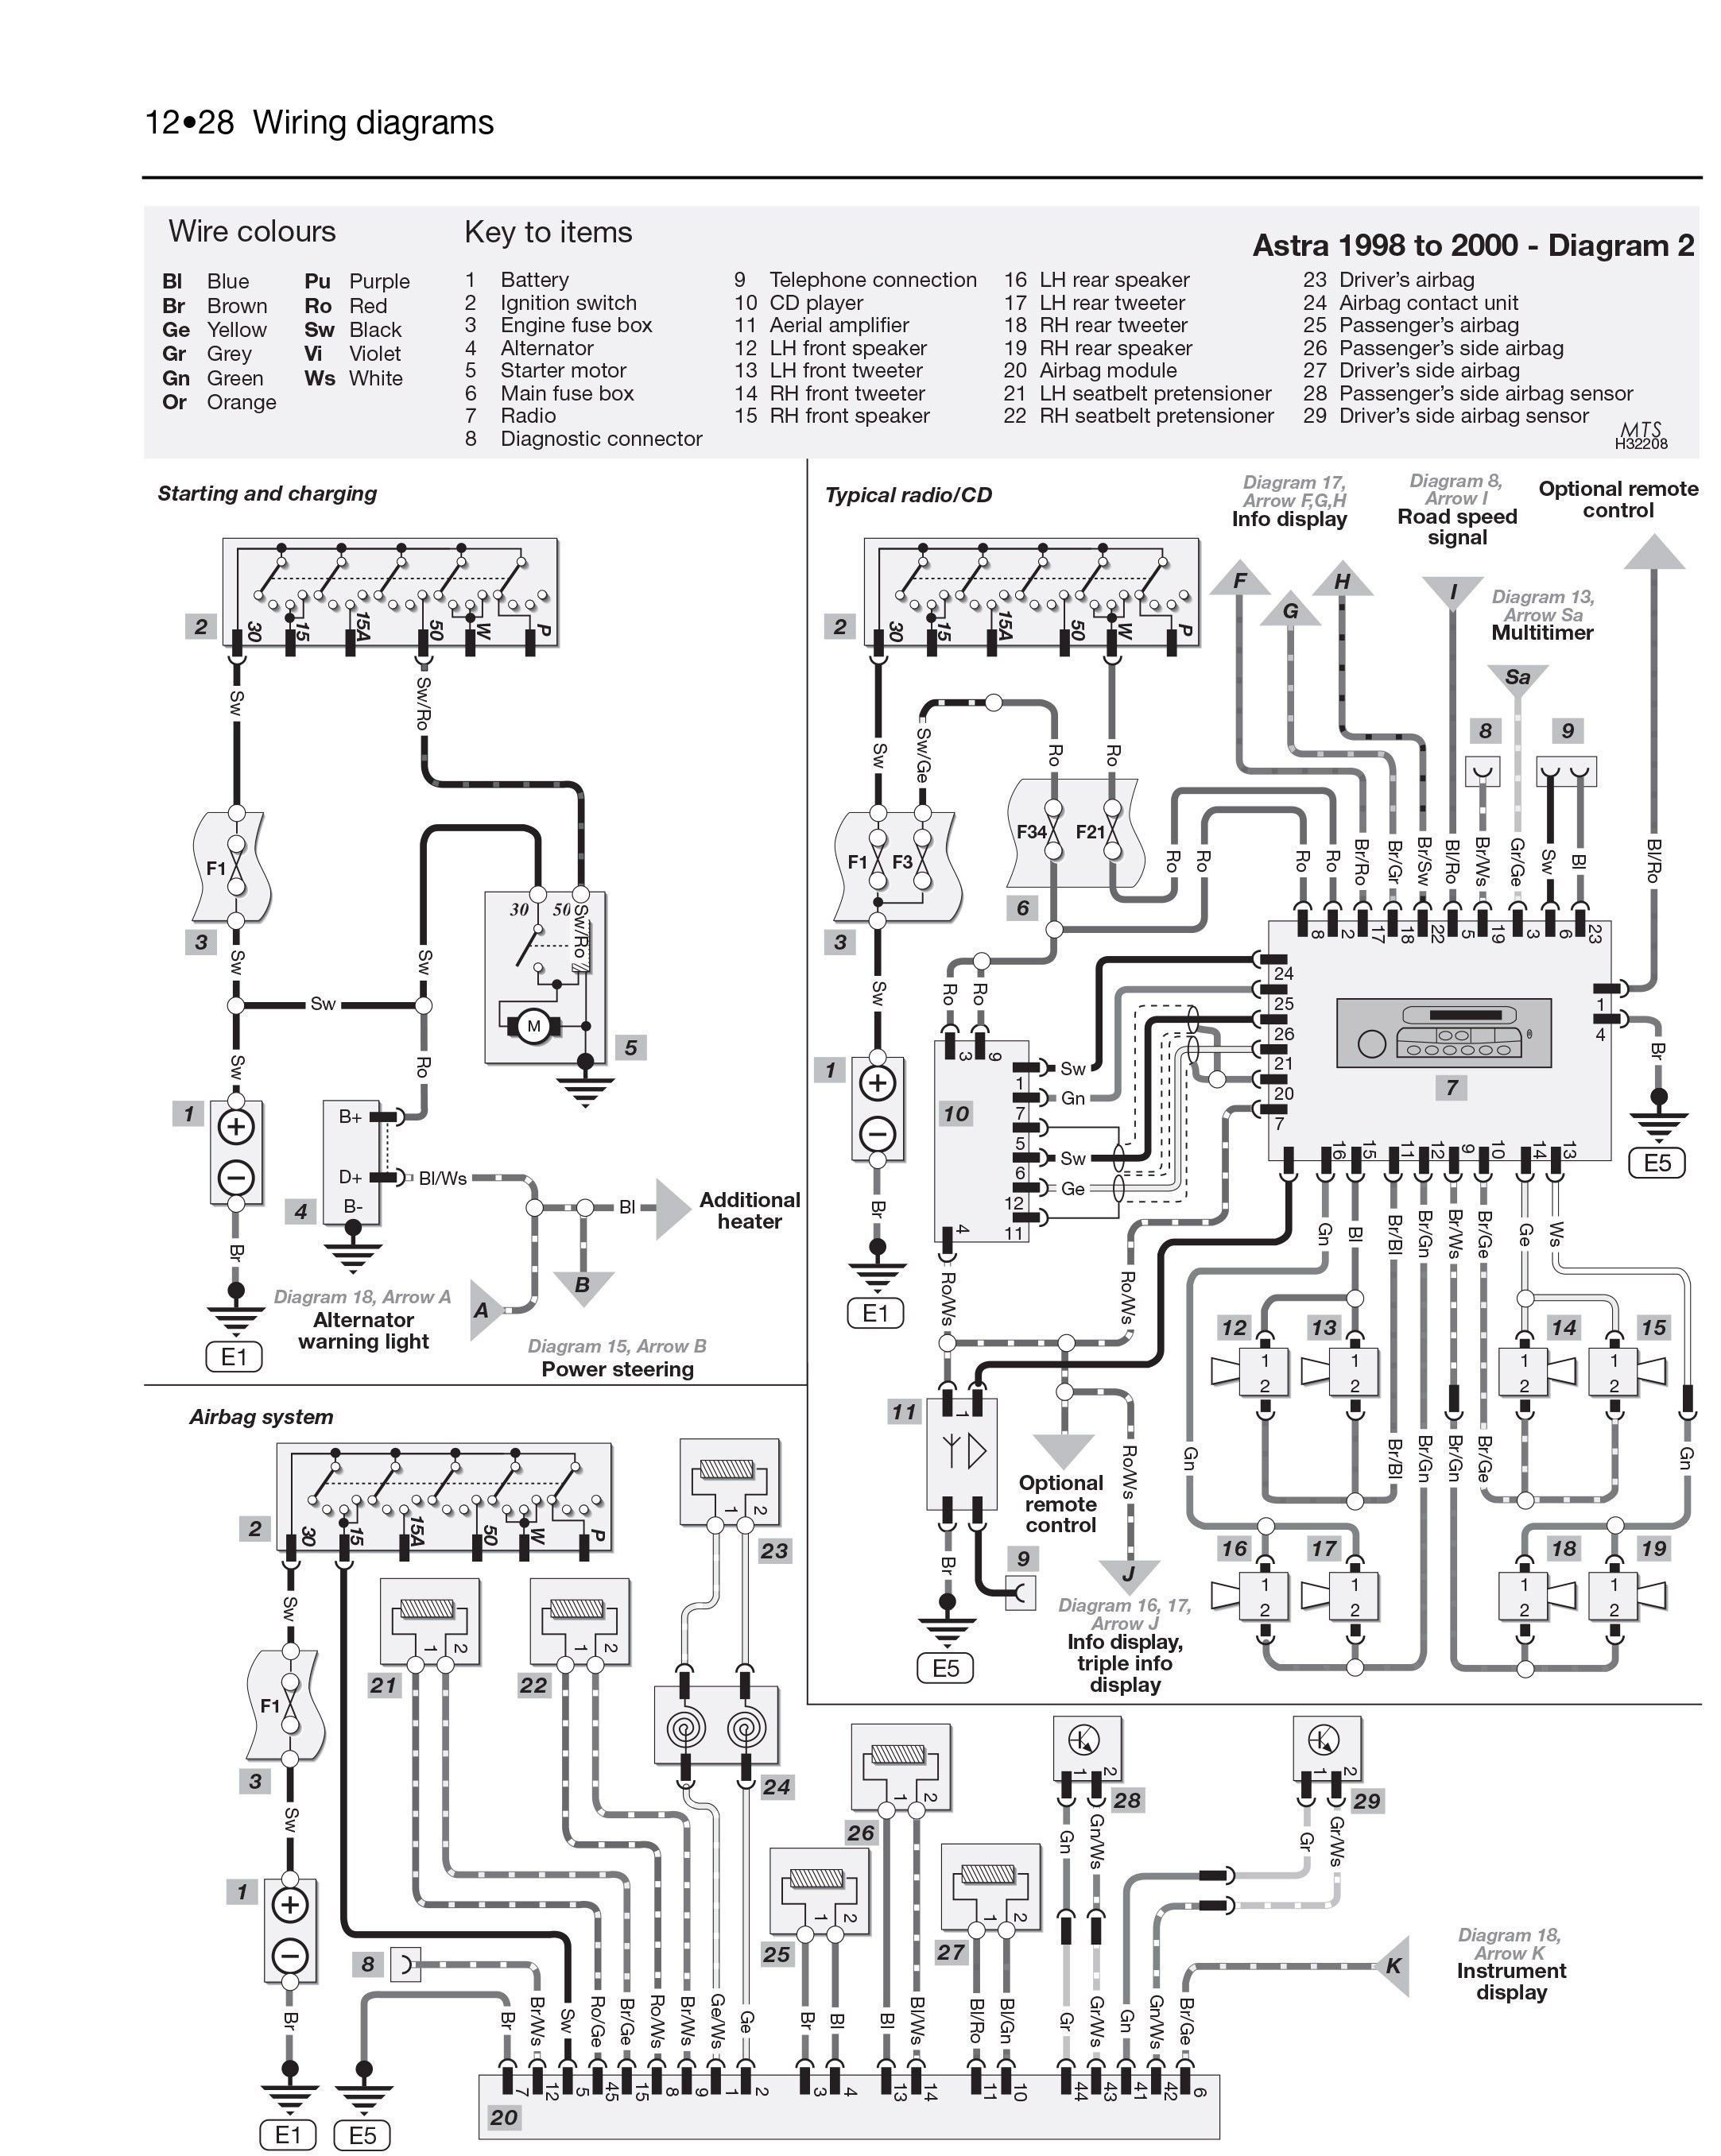 New Fire Alarm System Wiring Diagram Pdf #diagramsample #